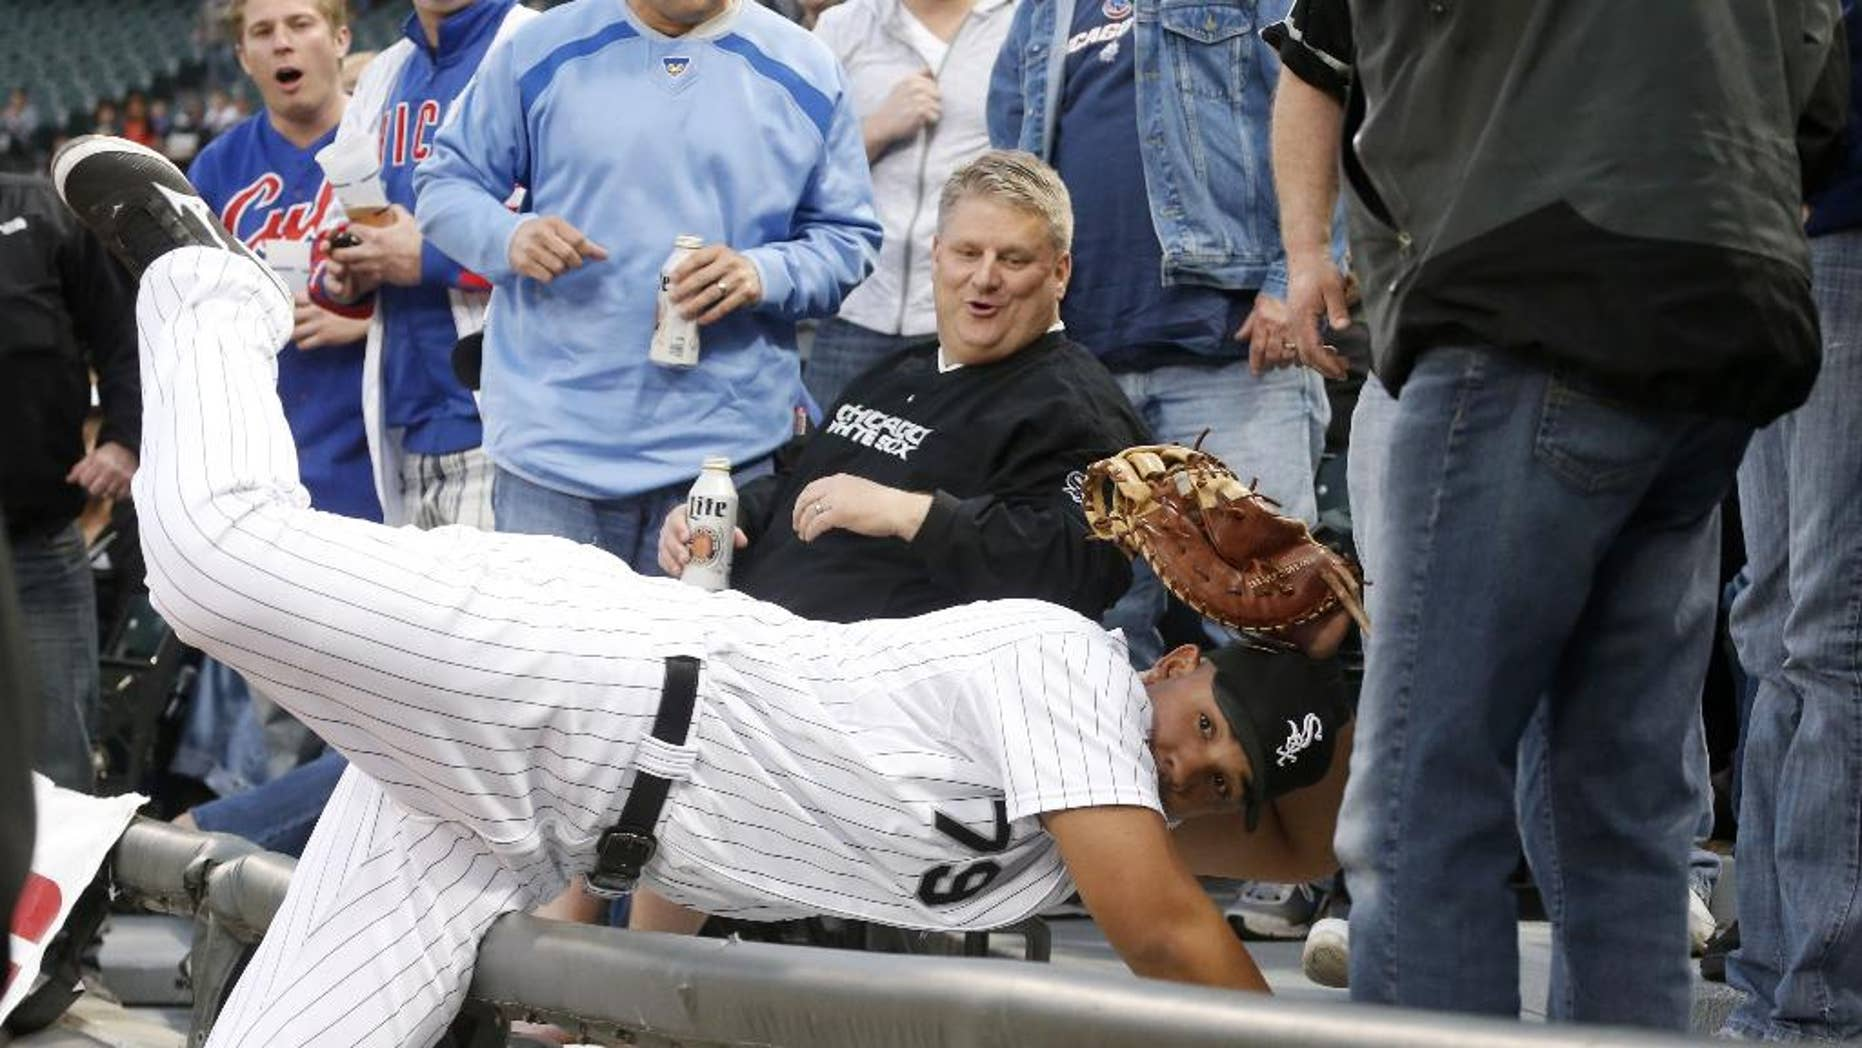 Chicago White Sox first baseman Jose Abreu shows his glove to first base umpire Marvin Hudson, after catching a fly ball off the bat of Chicago Cubs' Darwin Barney in the seats, during the second inning of an interleague baseball game Wednesday, May 7, 2014, in Chicago. (AP Photo/Charles Rex Arbogast)